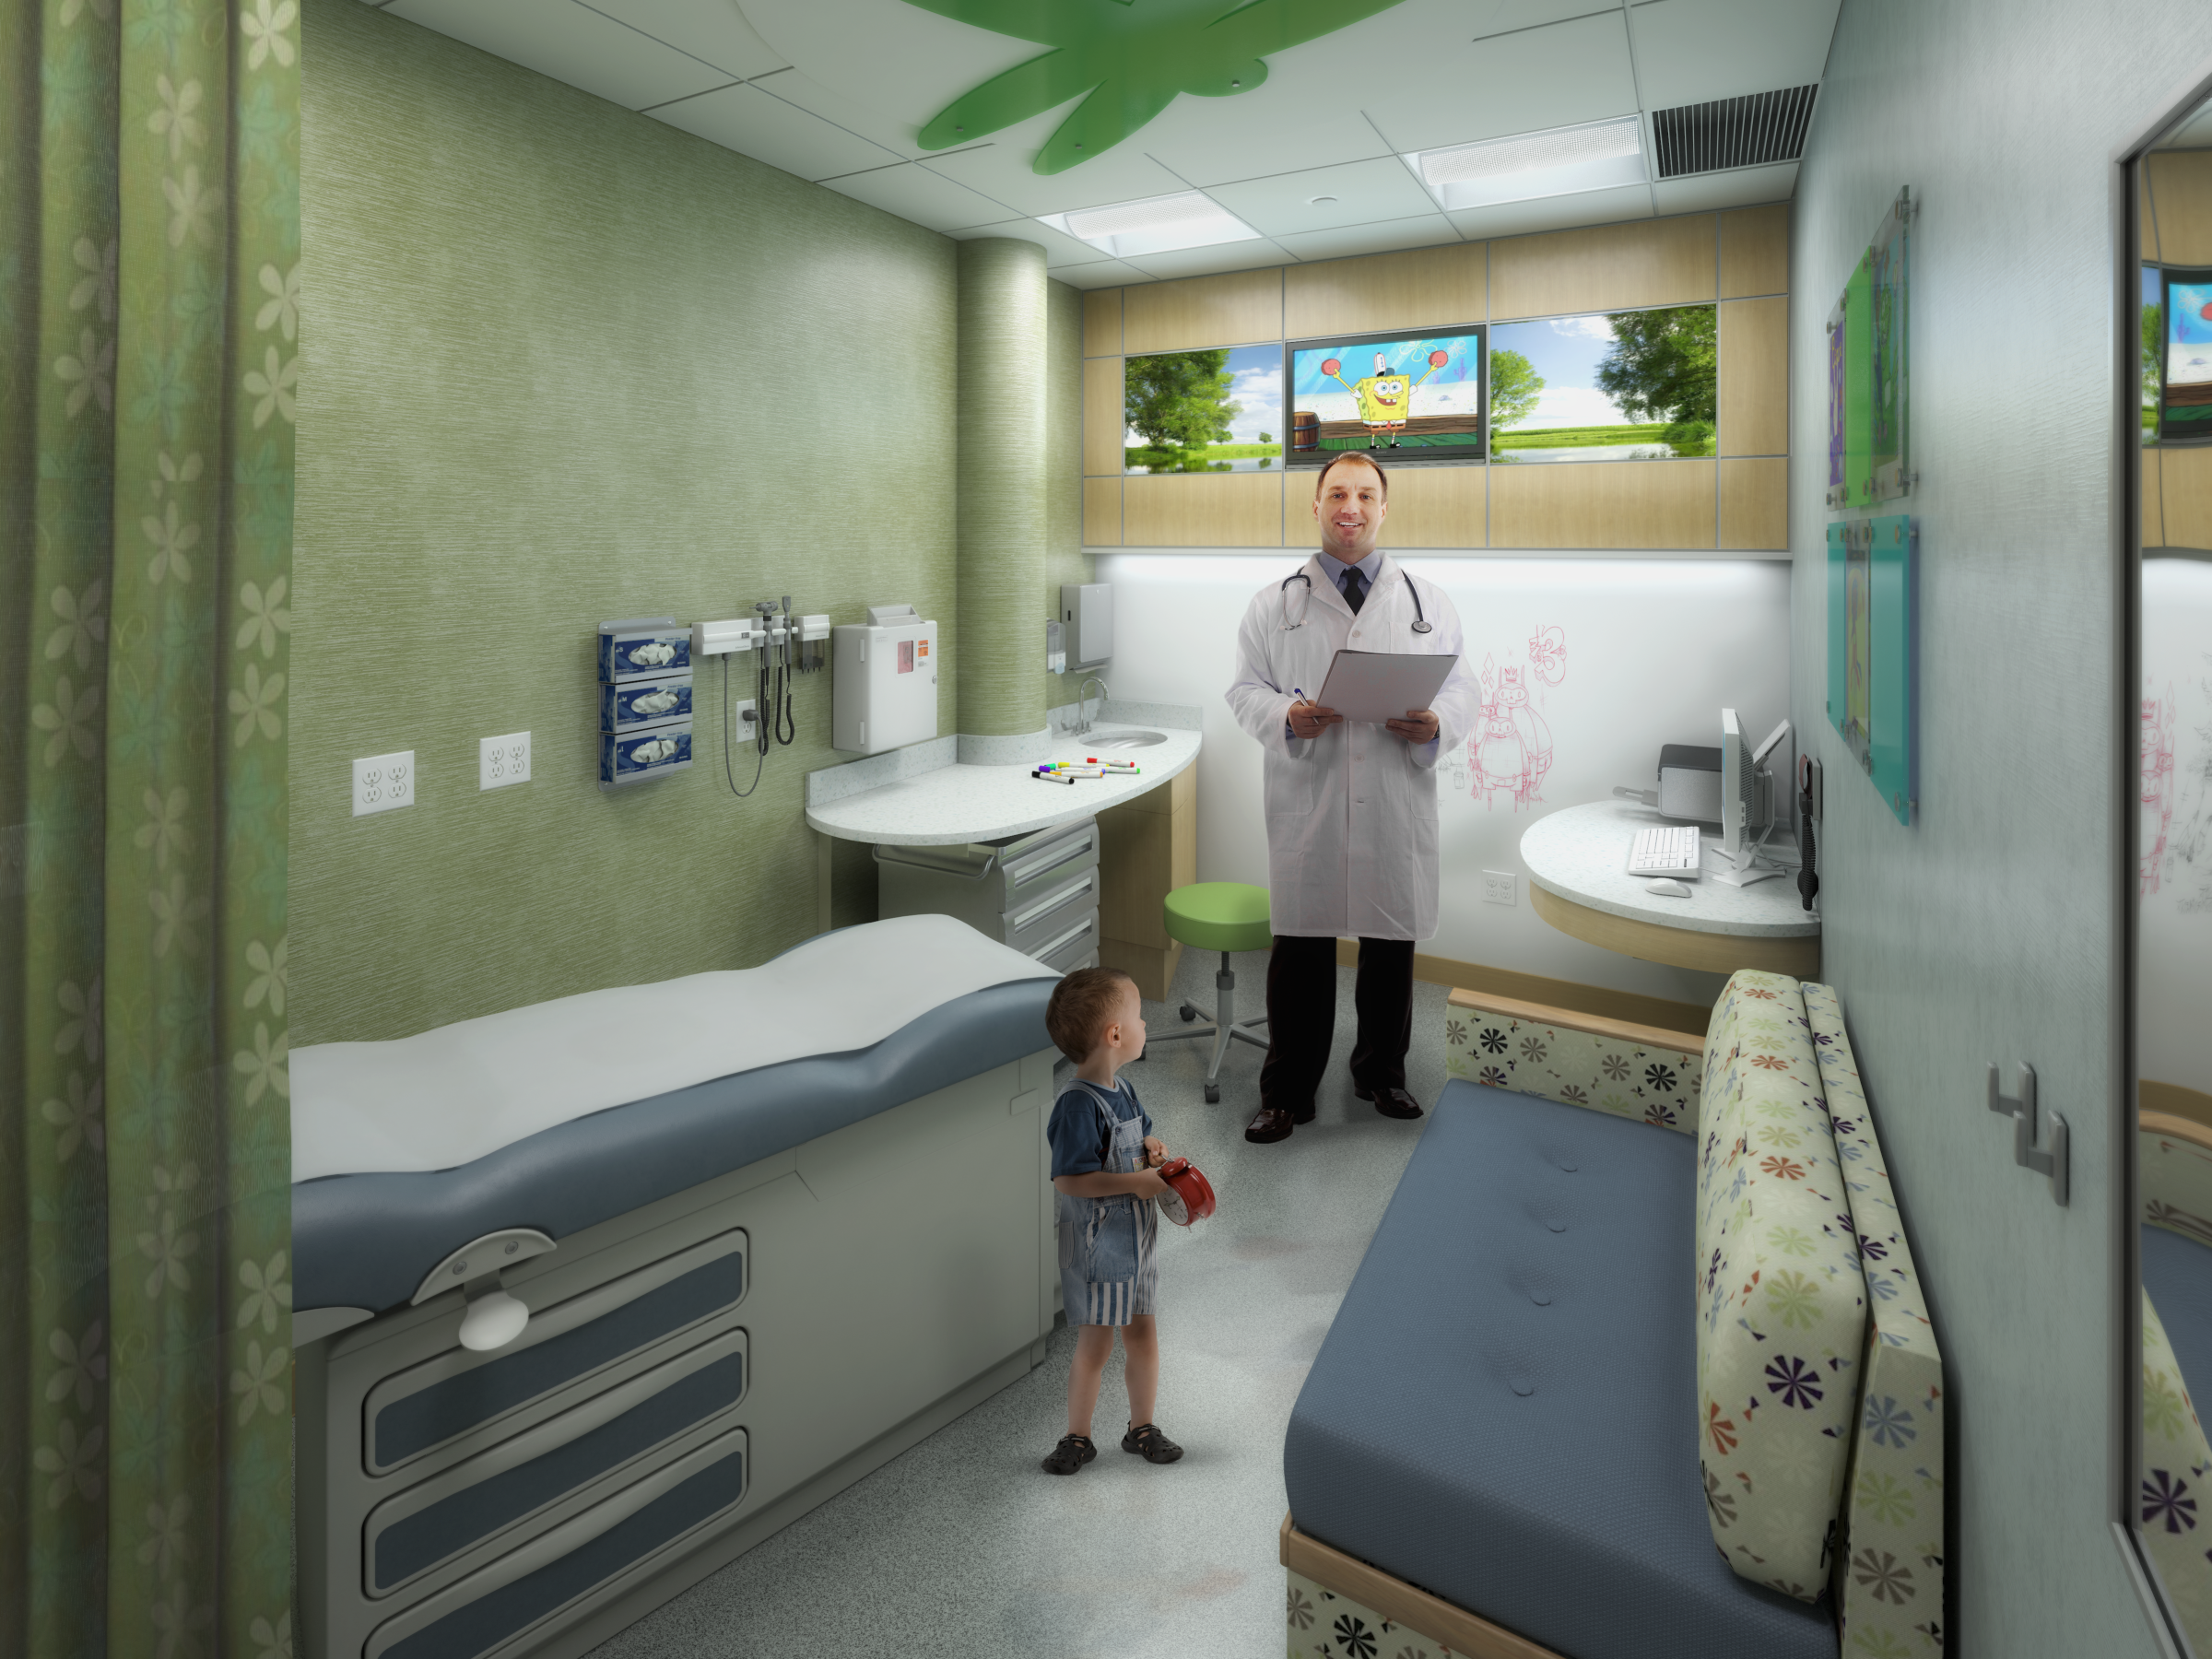 11-109_INTERIOR_EXAM-14_ReTouched-02_Flattened_2400px.png